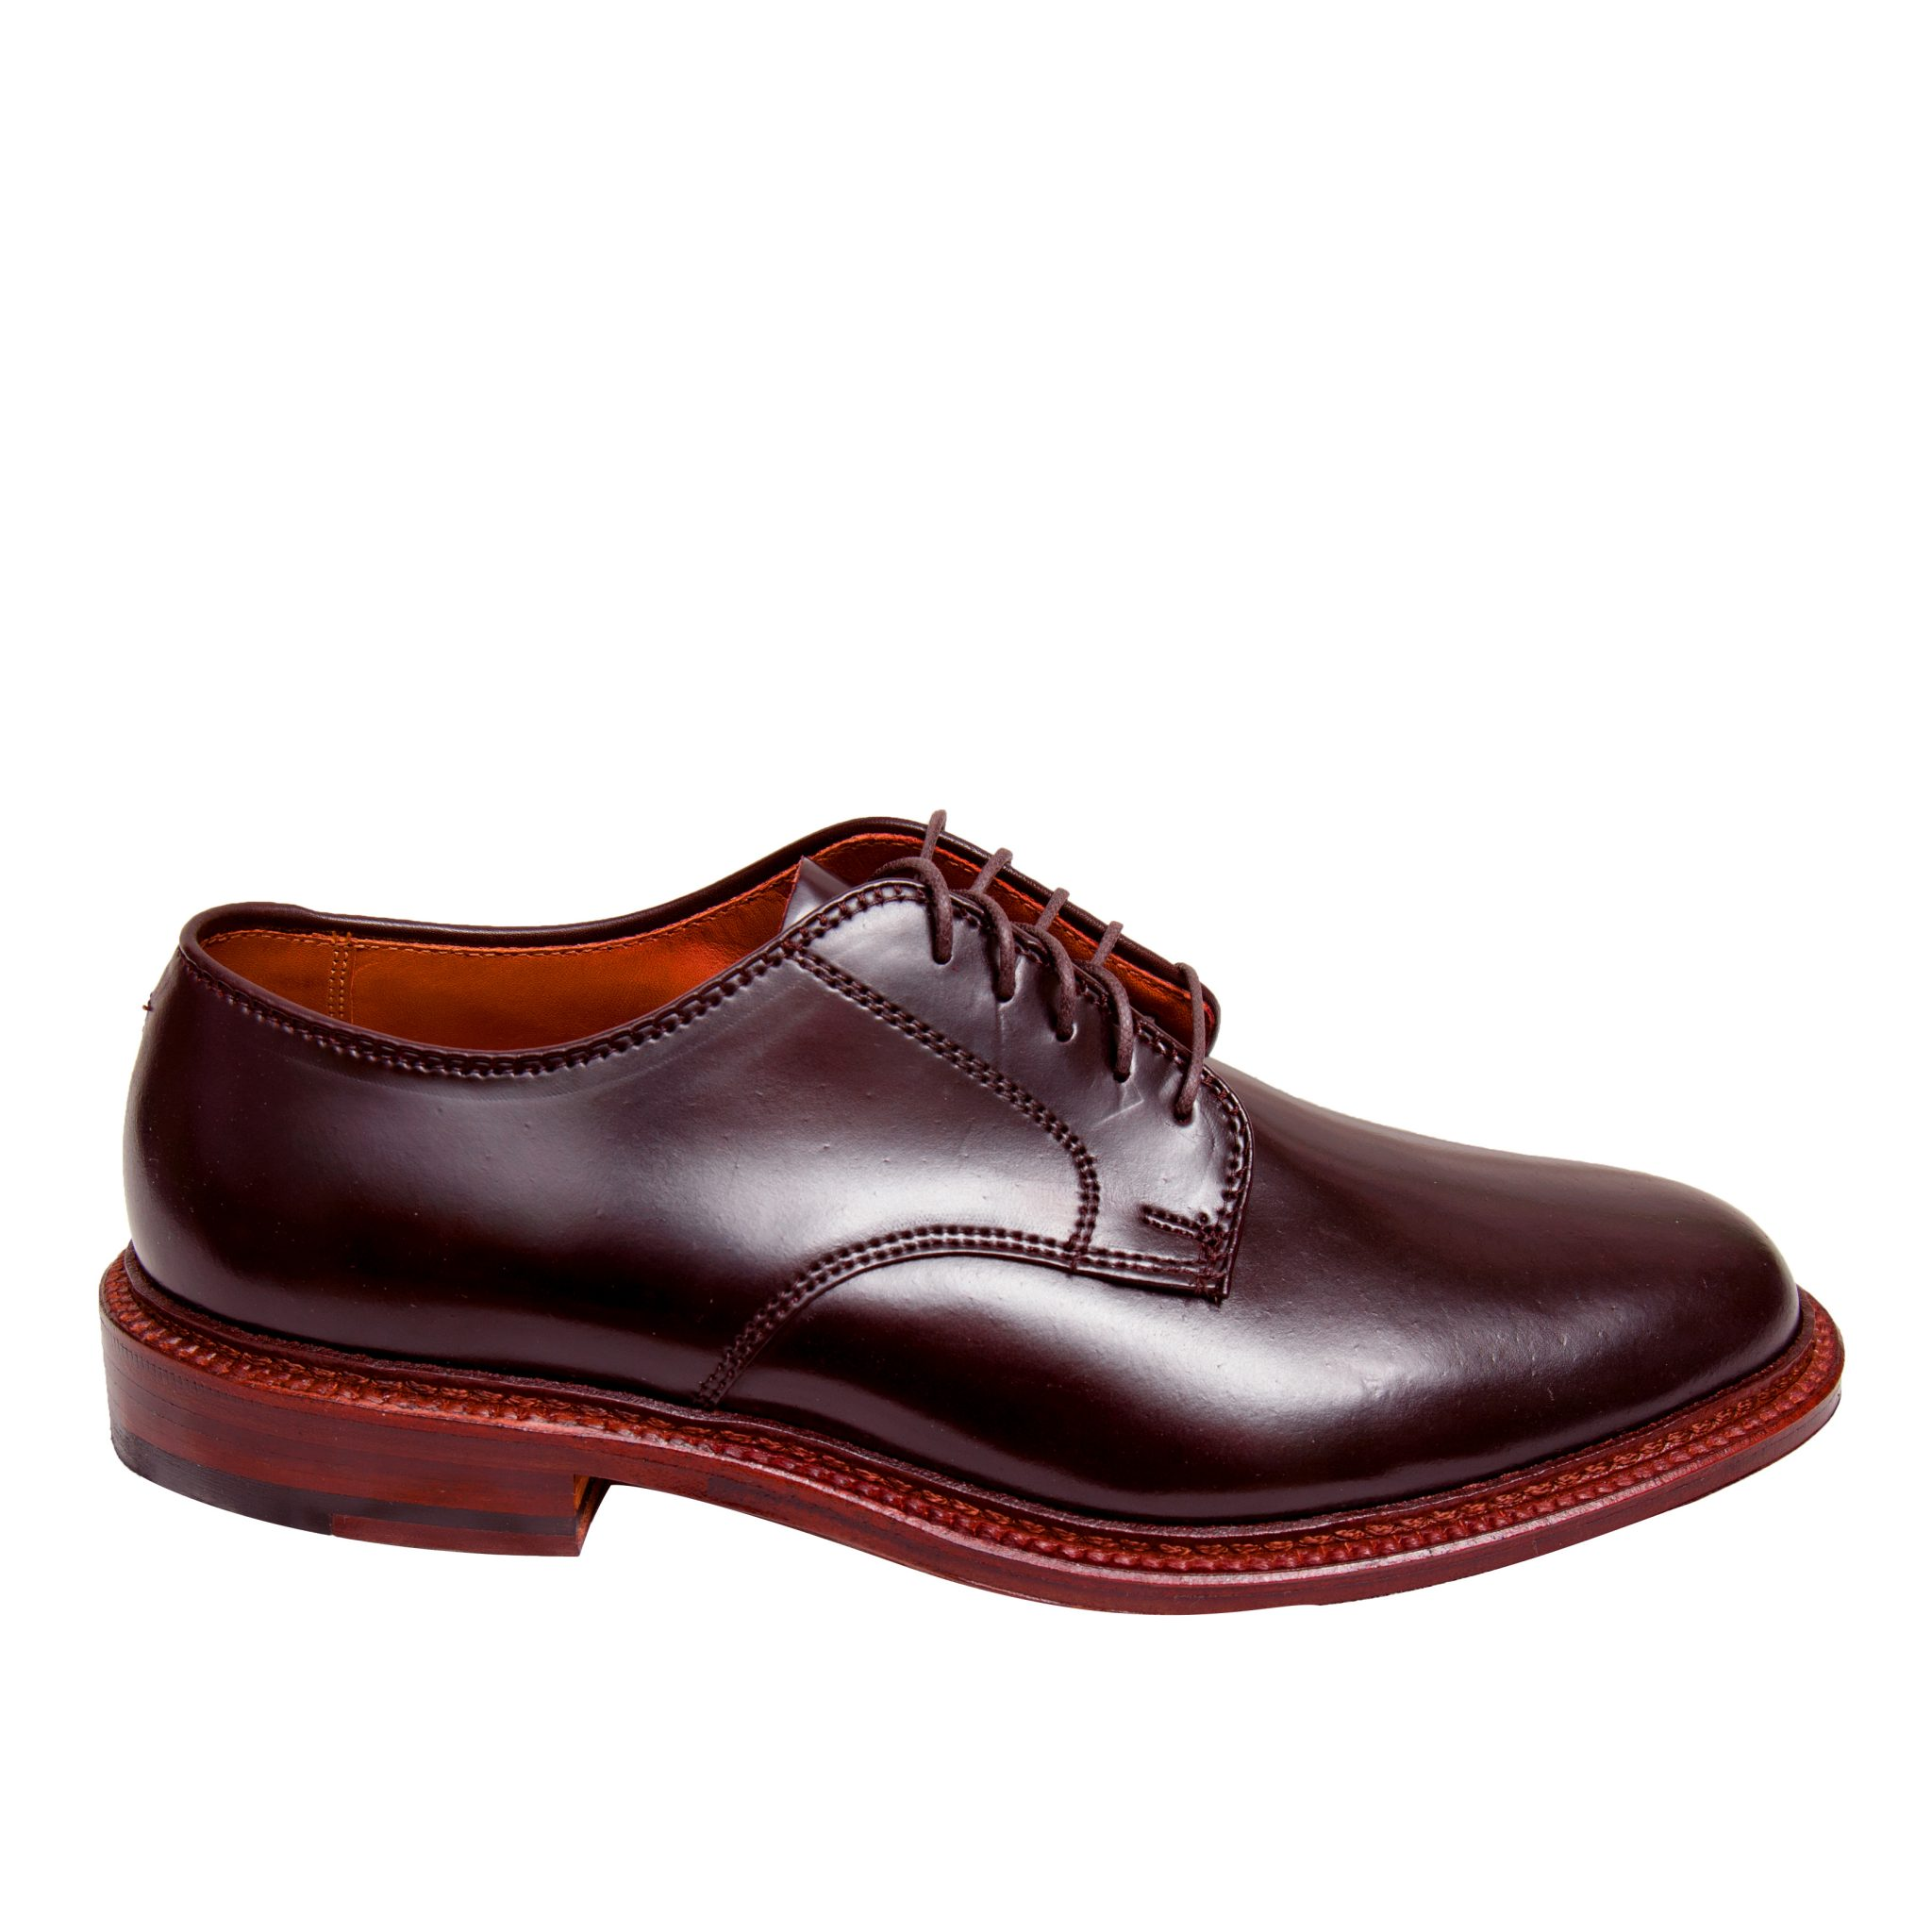 Unlined dovercolor 8 shellm6405 alden shoes madison for The alden